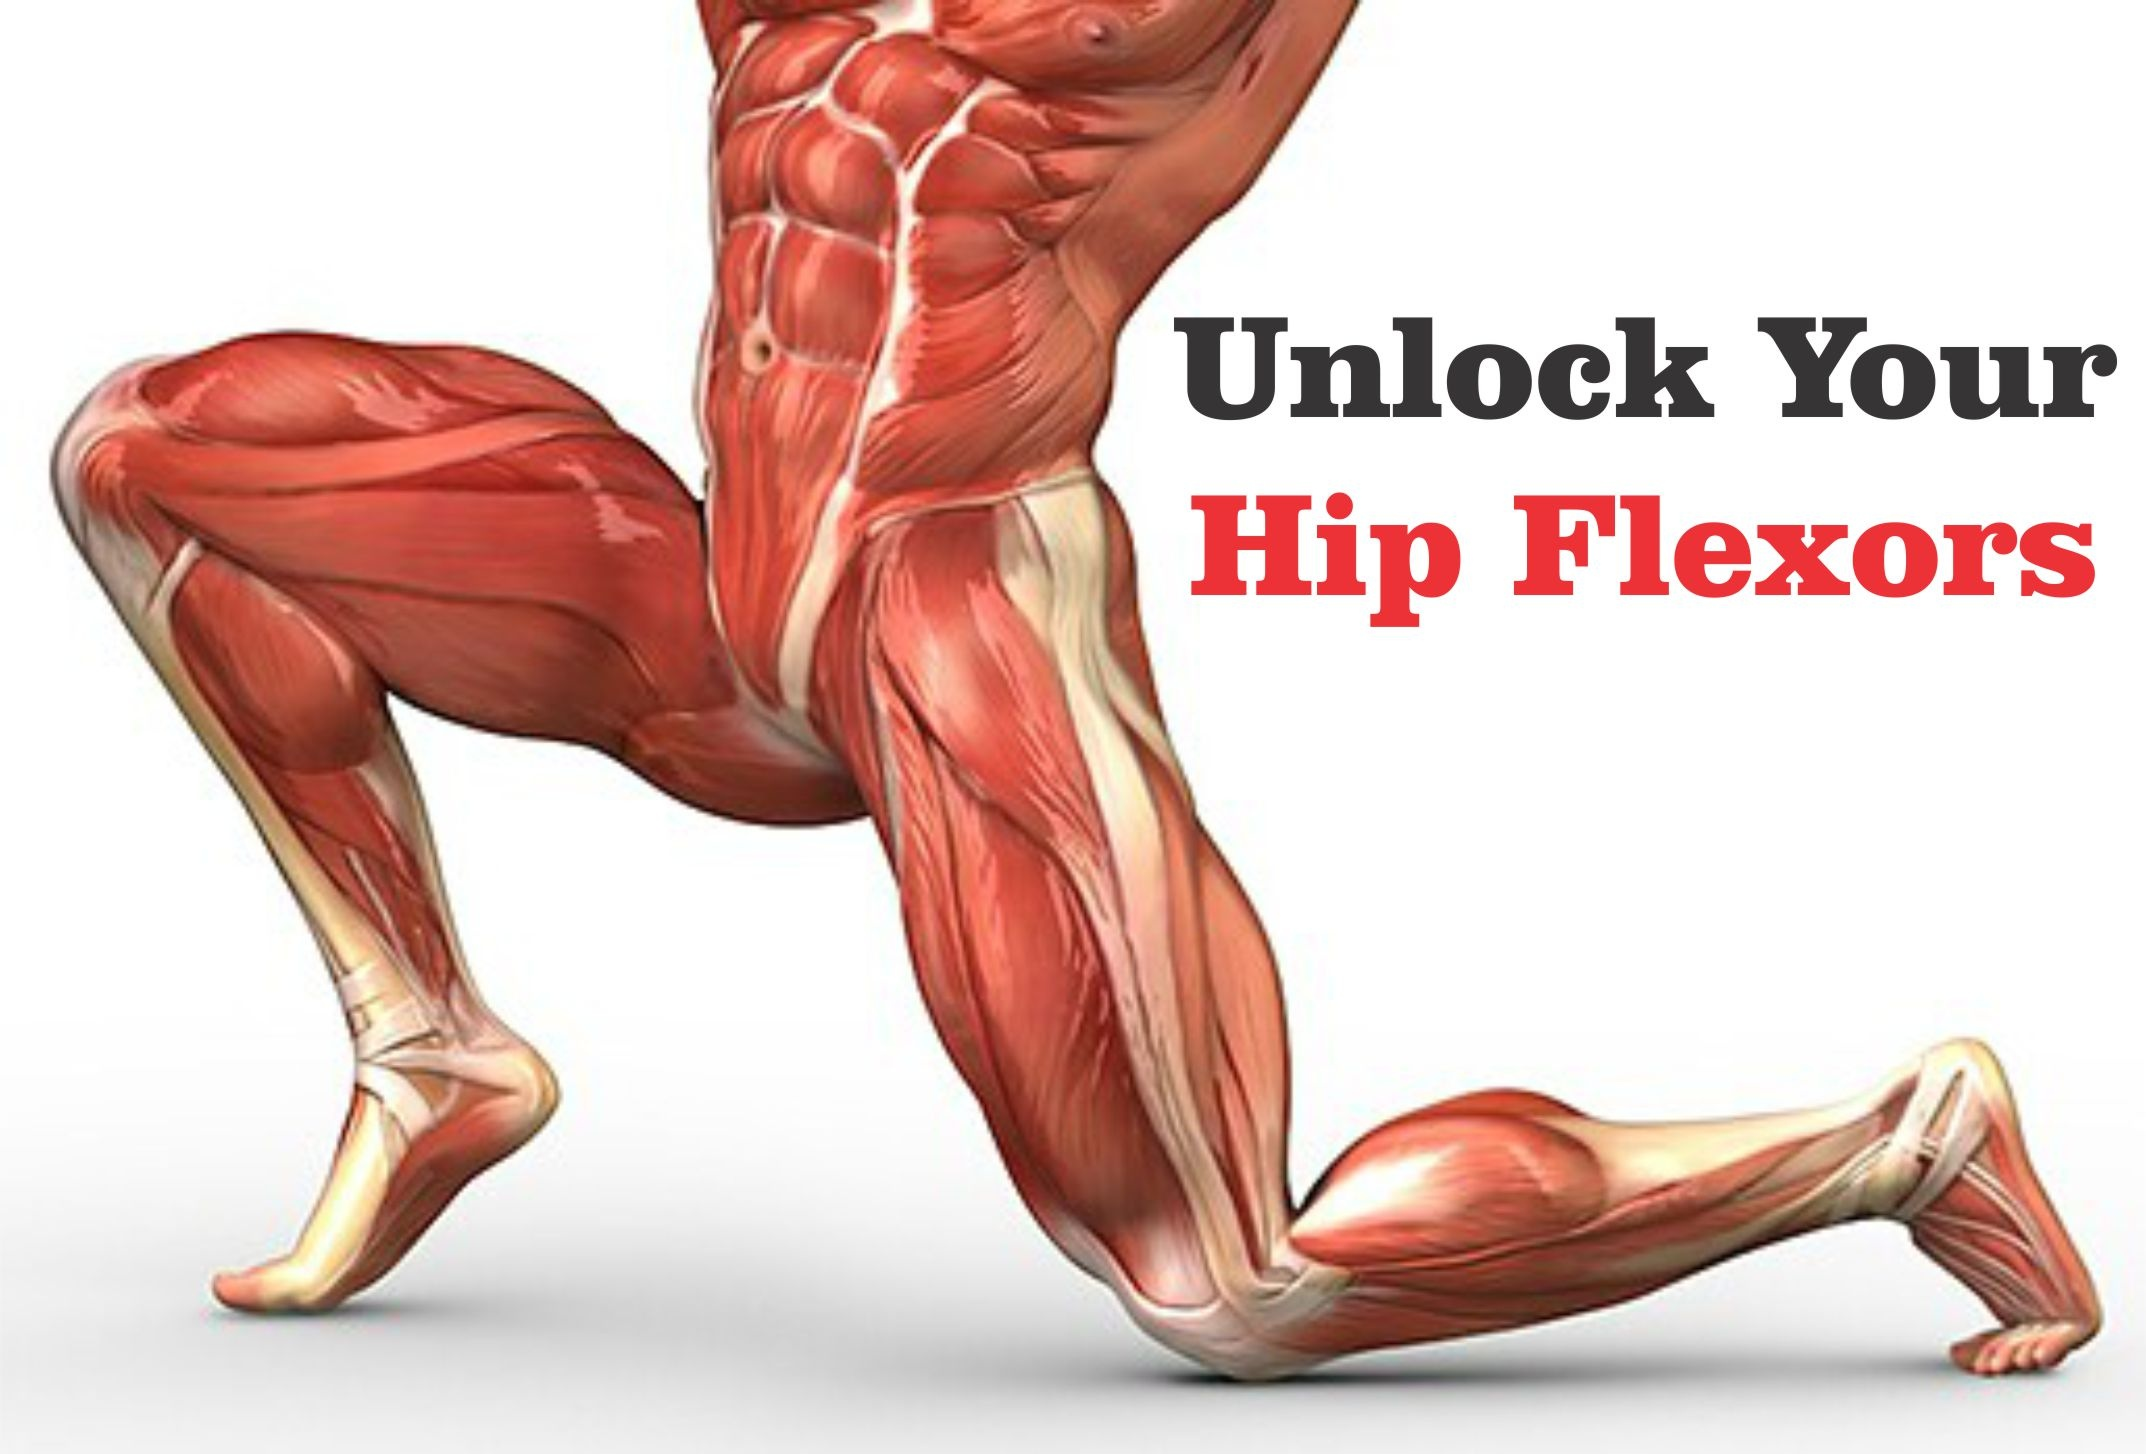 Hip Flexor Pain Treatment